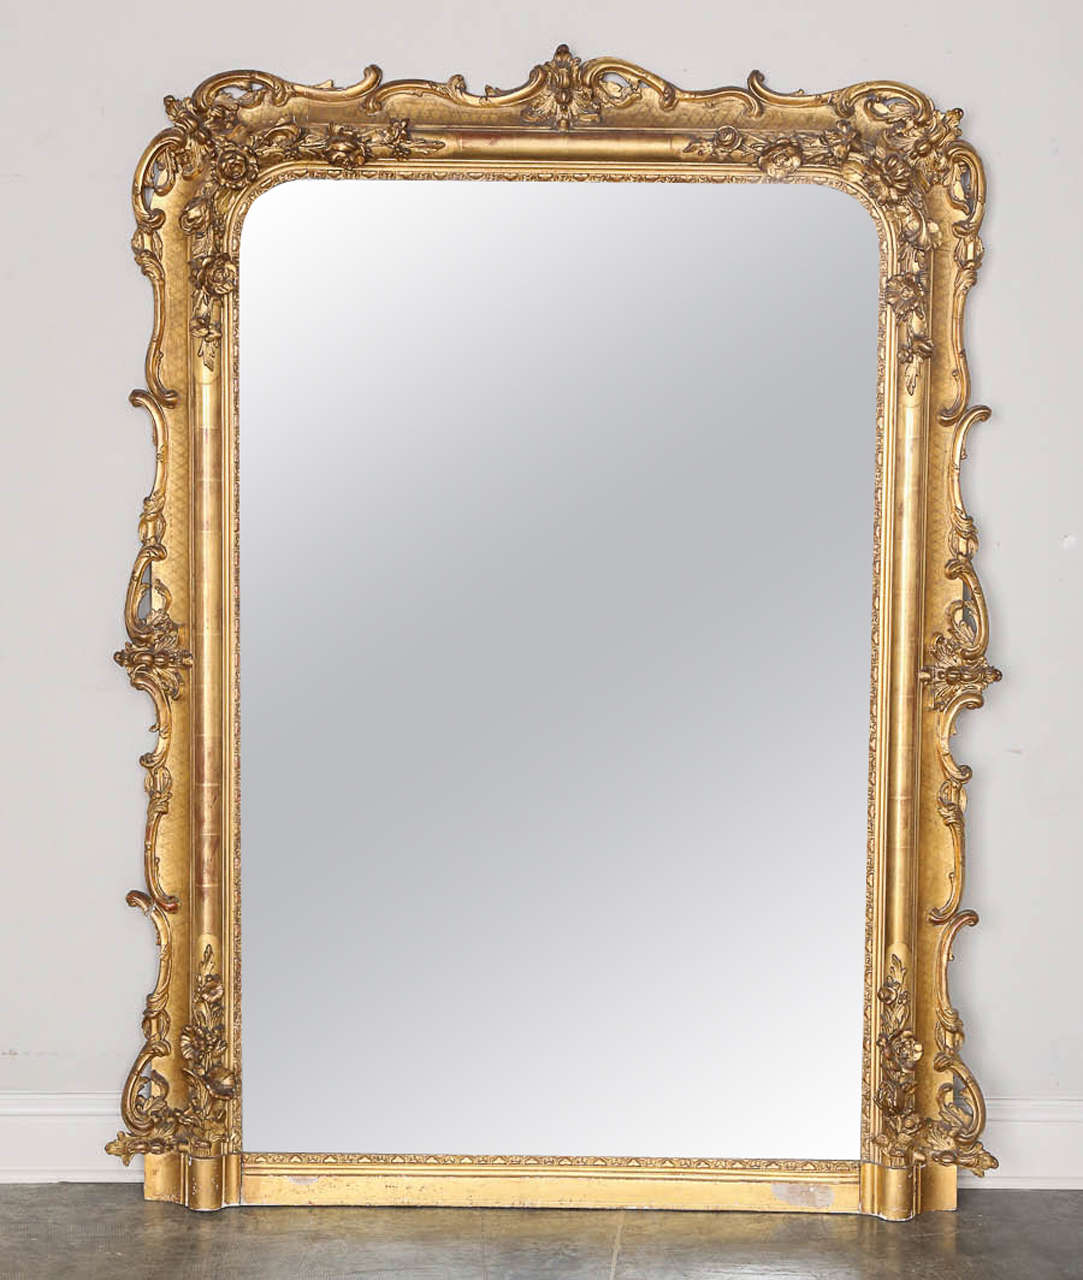 19th Century French Louis Xv Style Gold Gilt Mirror At 1stdibs